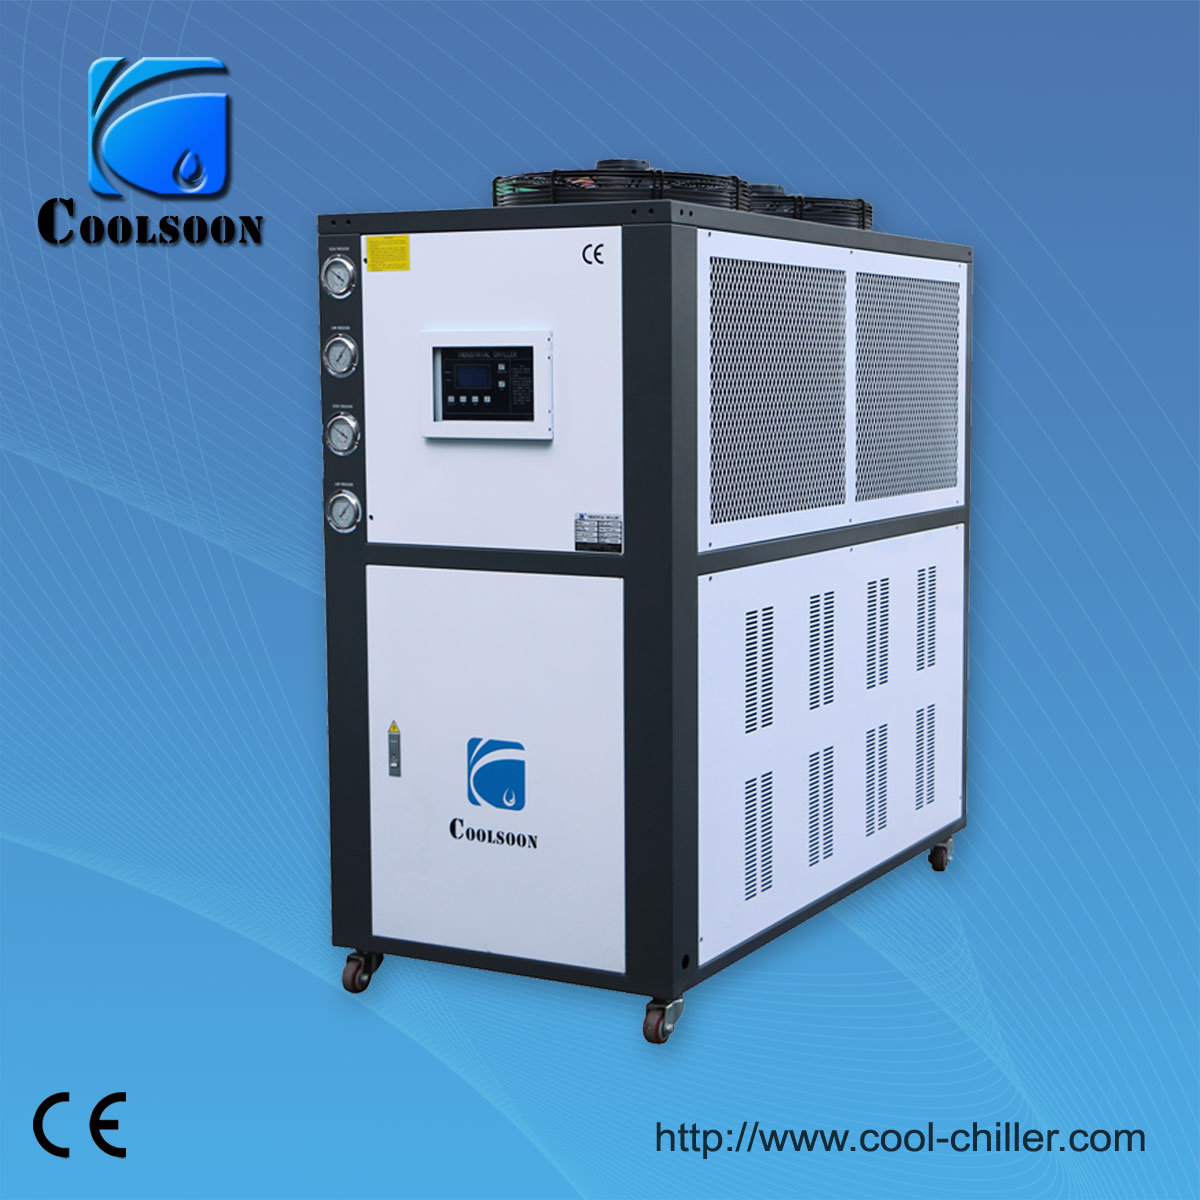 Industrial chillers: description, application, device and types 13